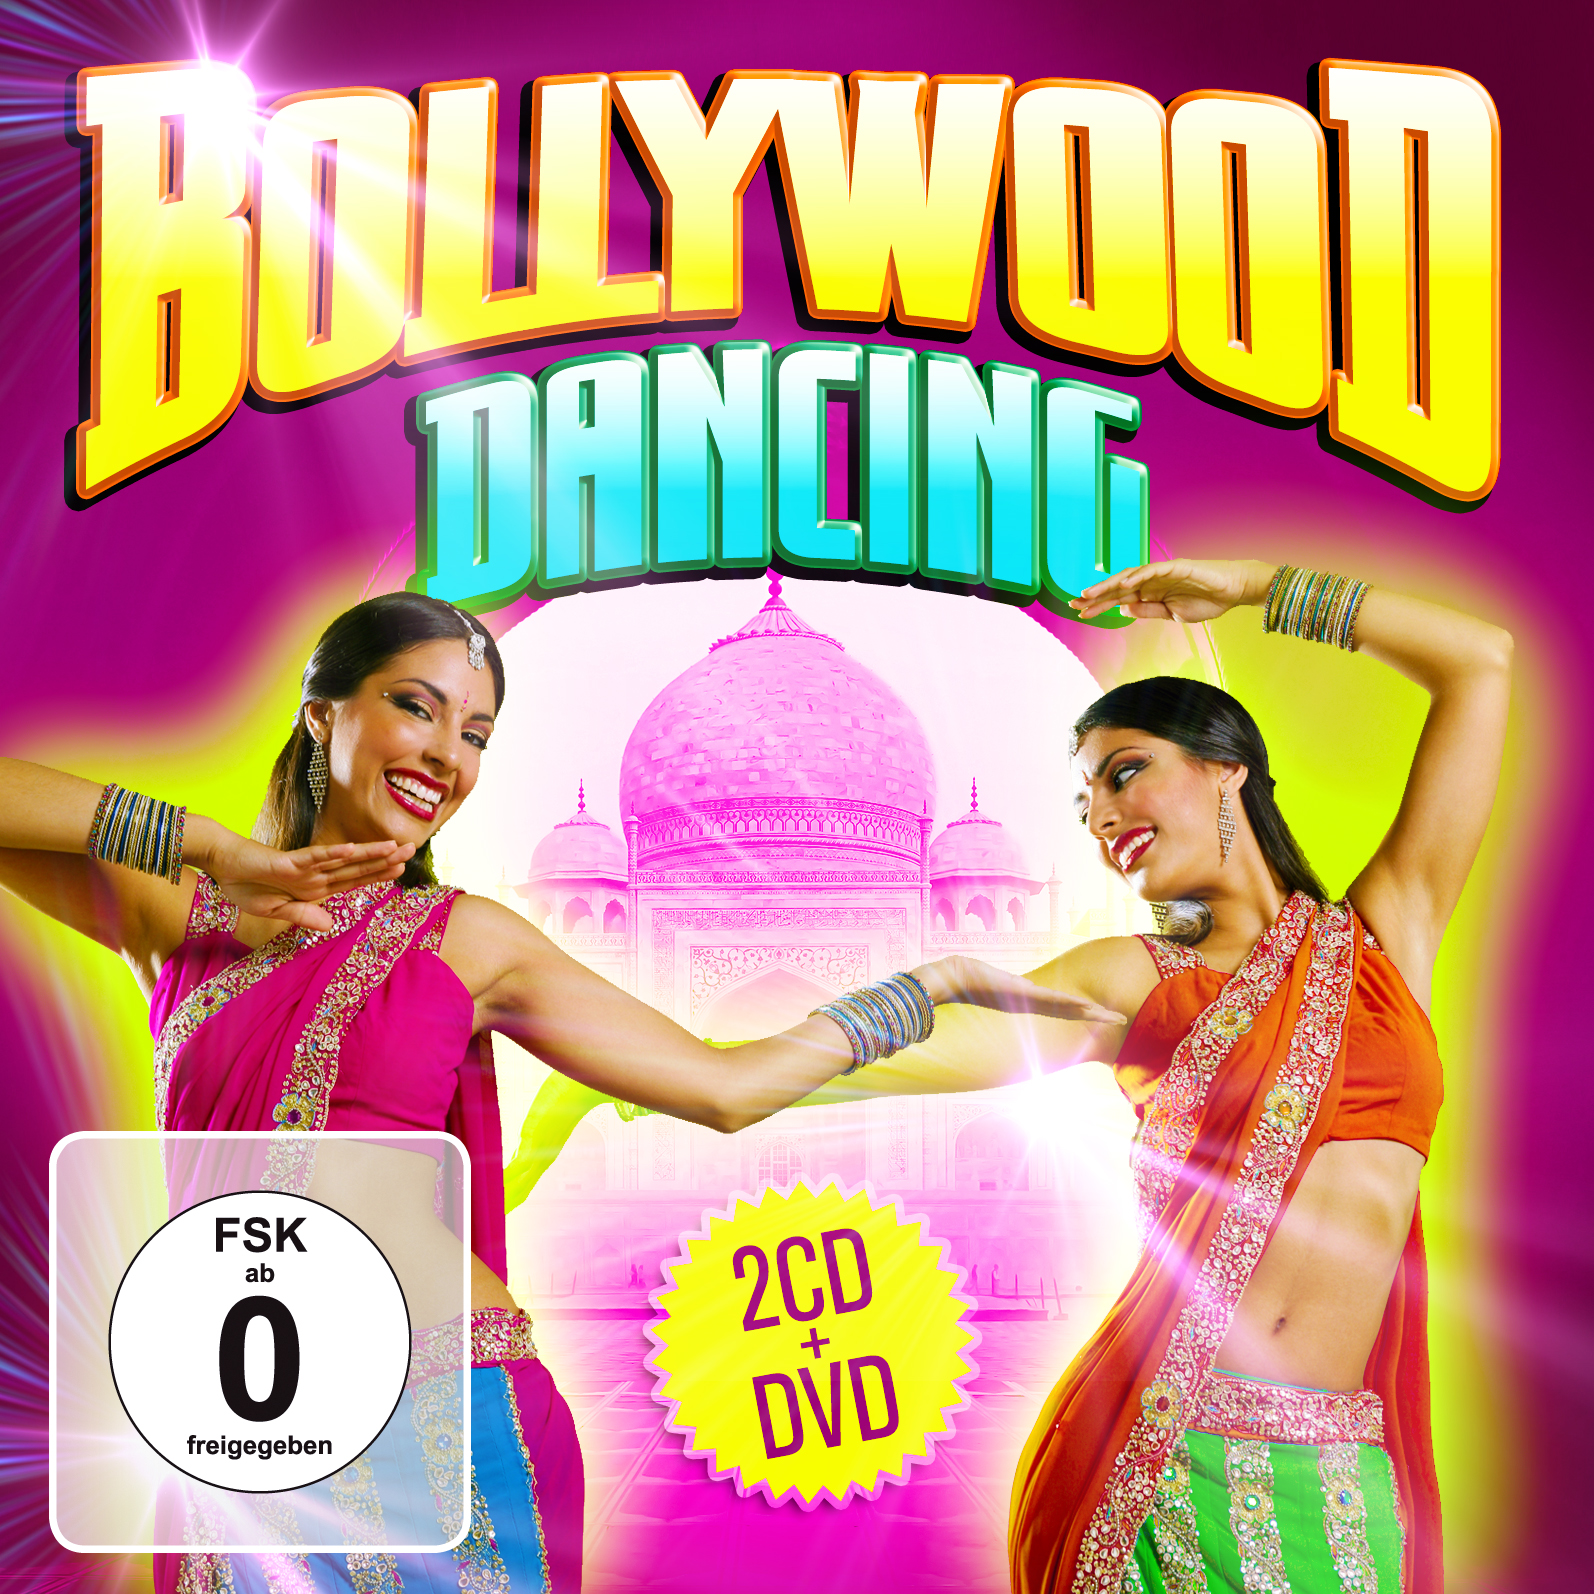 Bollywood Dancing for Beginners and Advanced